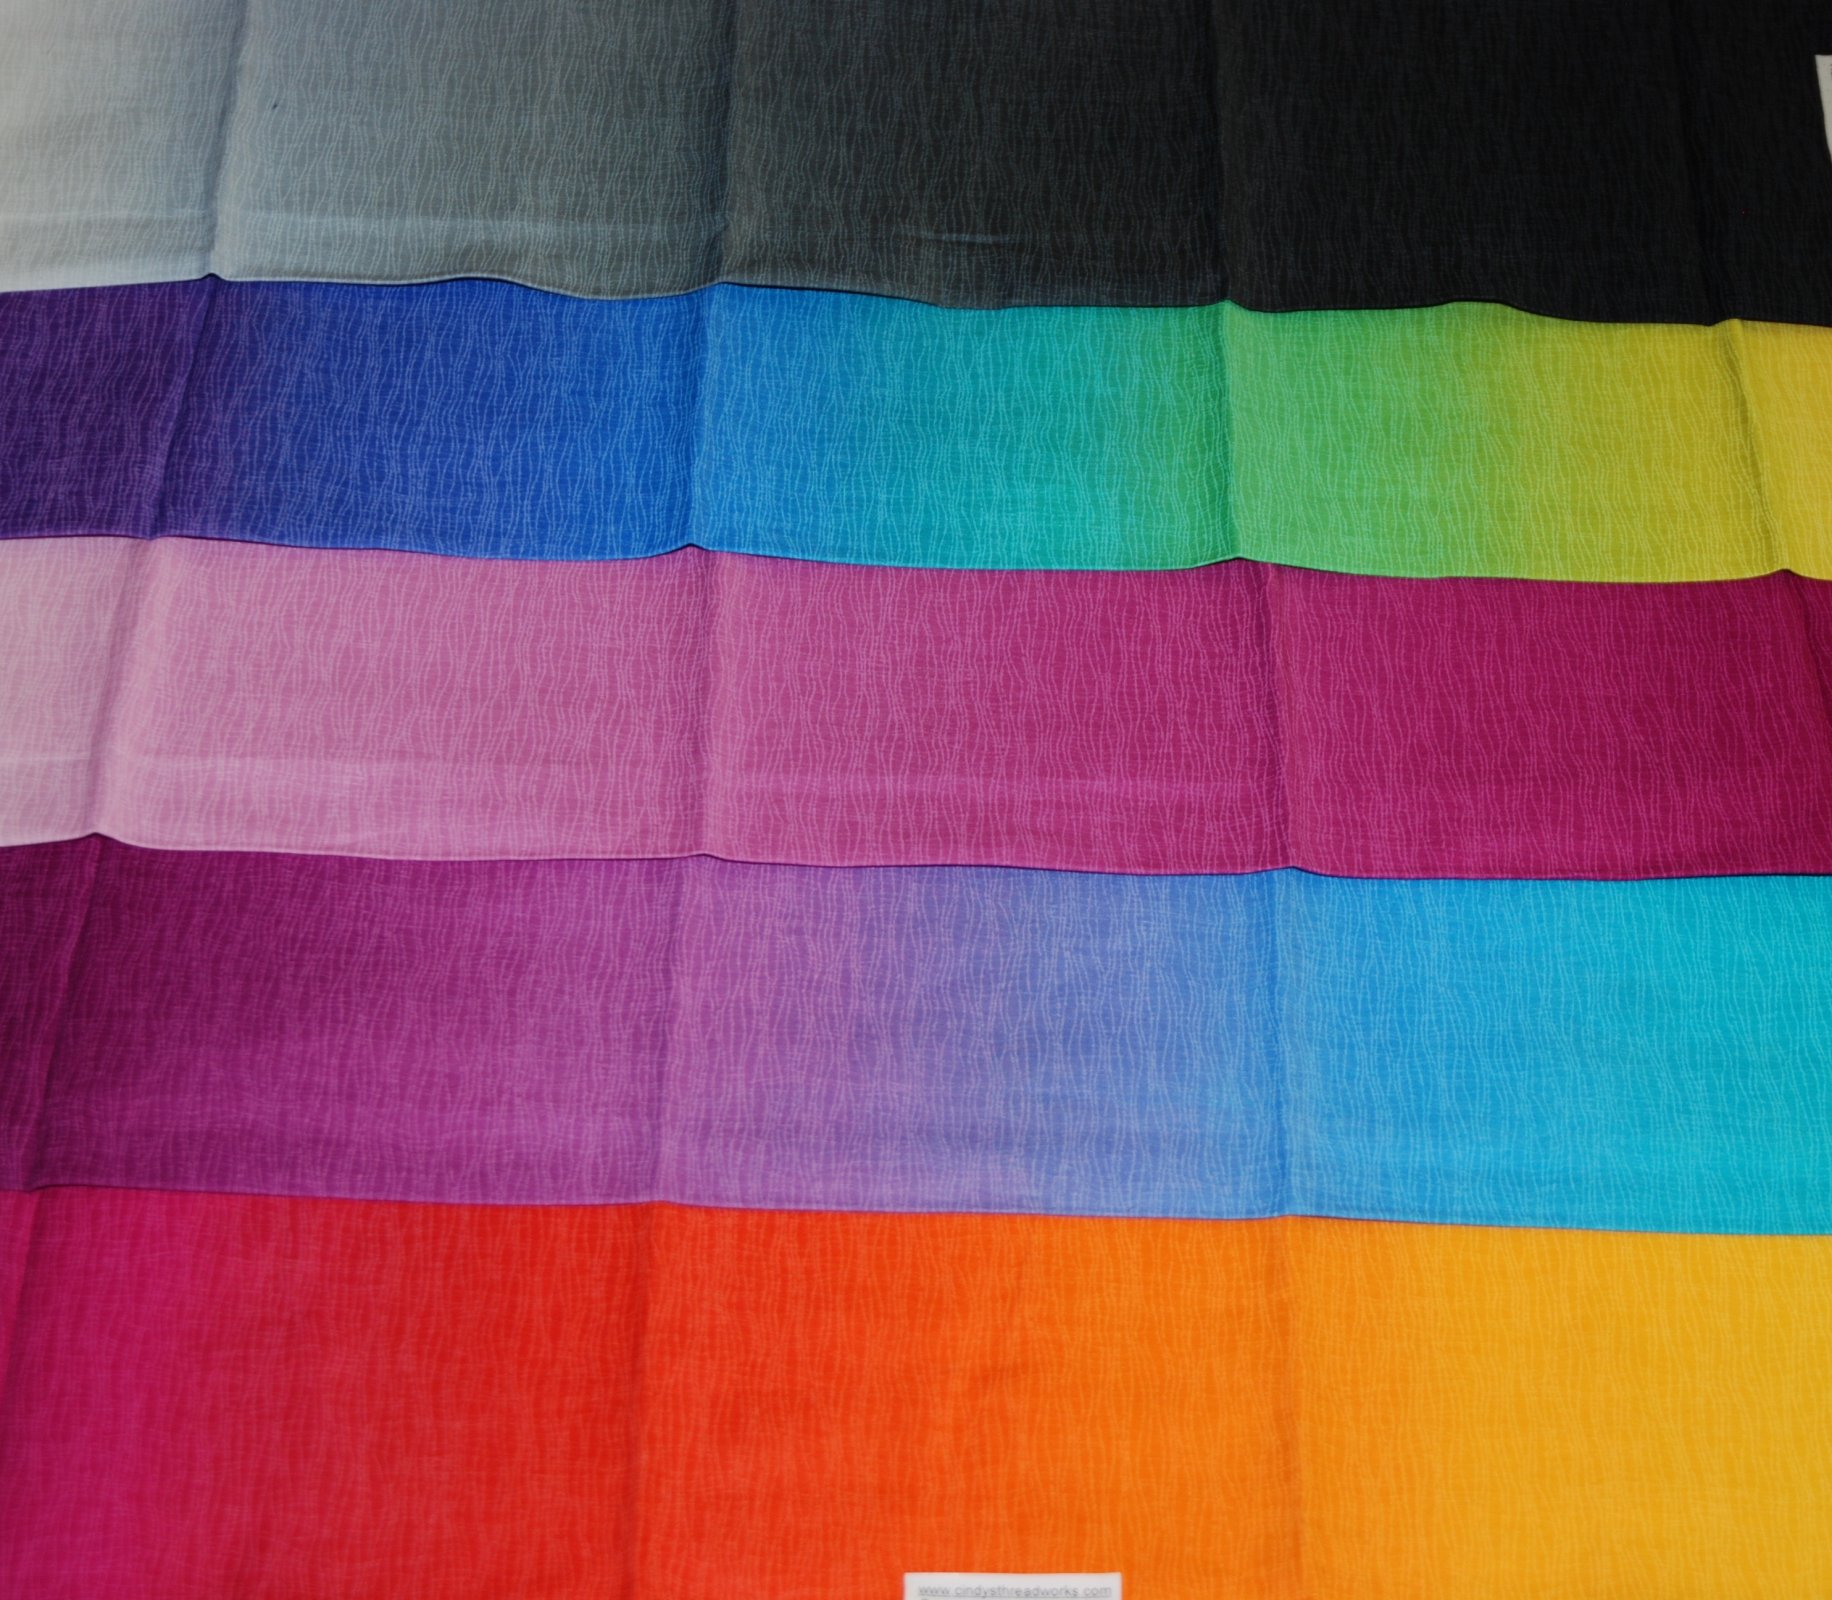 Gelato OMBRE Fabric by yd. (28) combinations!